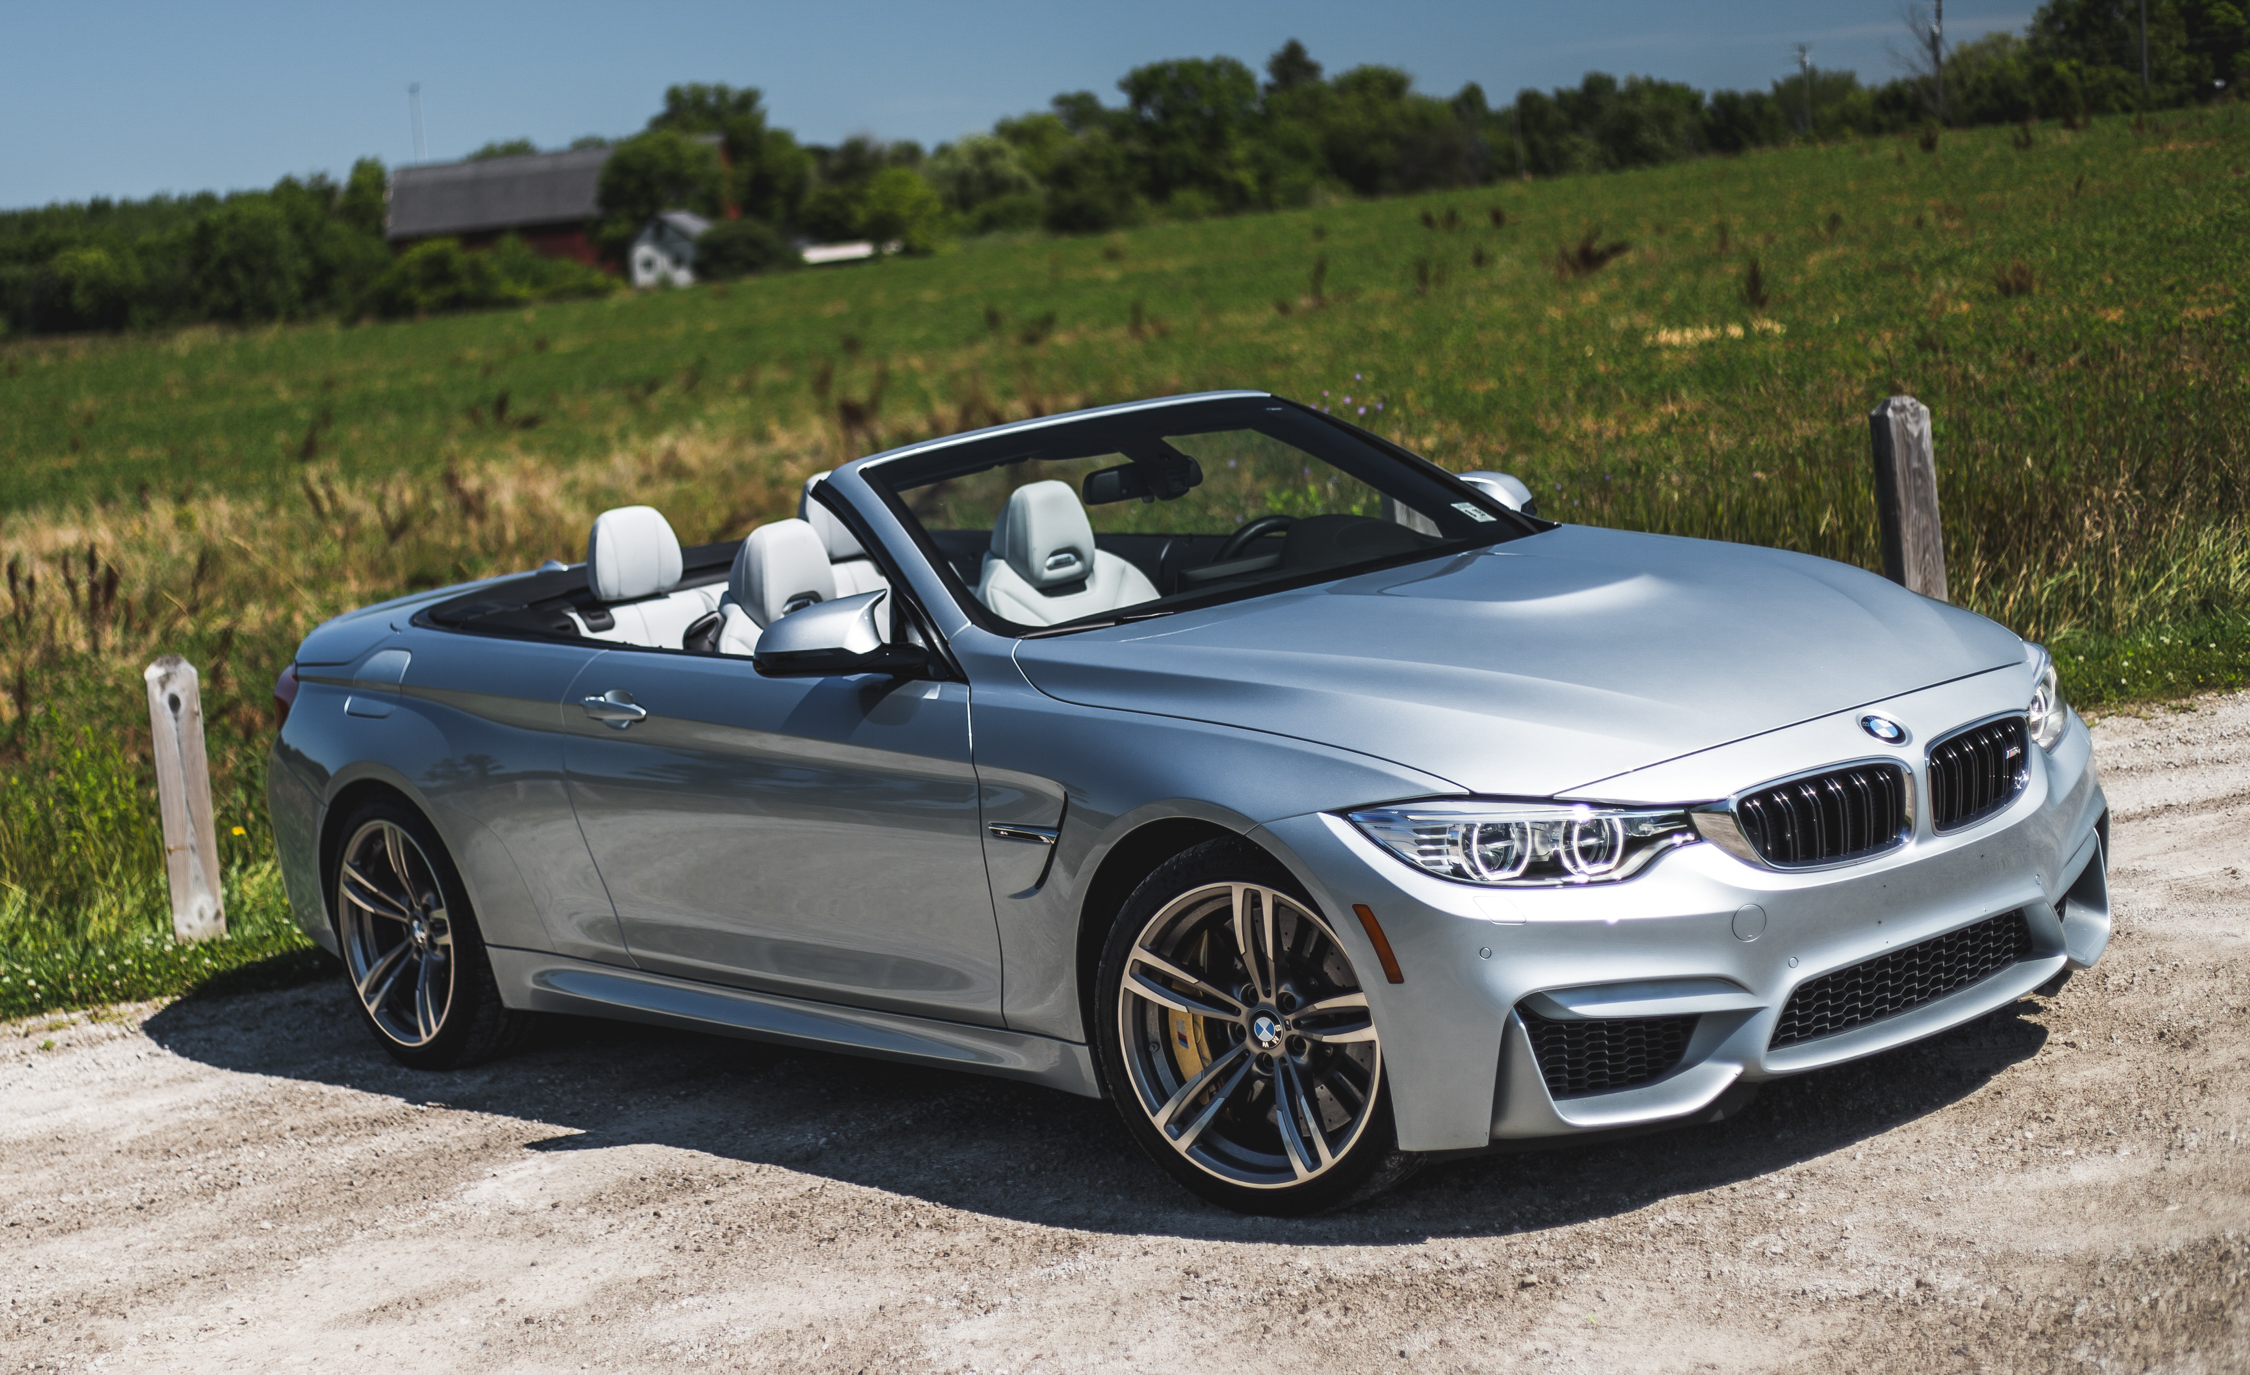 2015 Bmw M4 Convertible Cars Exclusive Videos And Photos